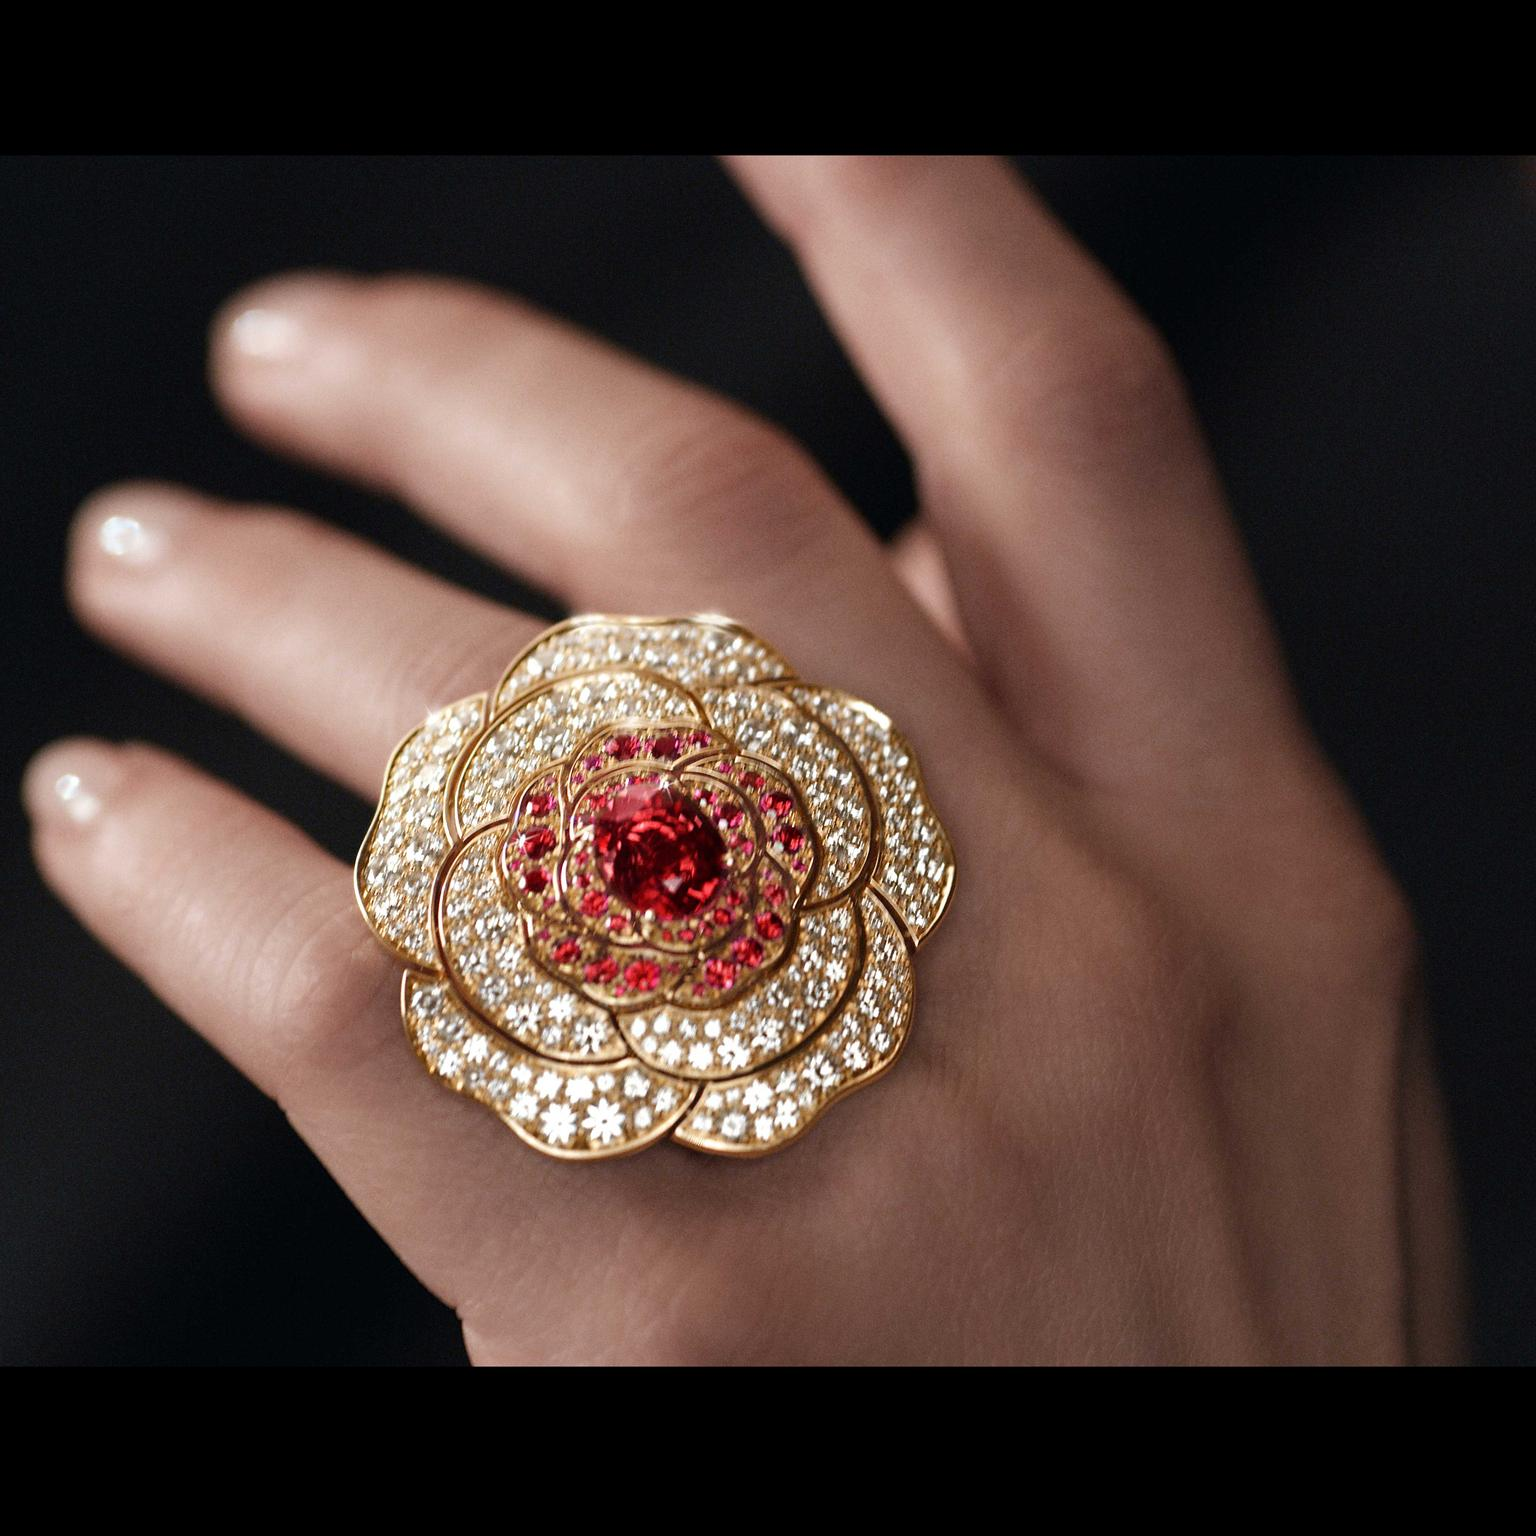 Chanel 1.5 Rouge Tentation spinel and diamond rose gold ring 2